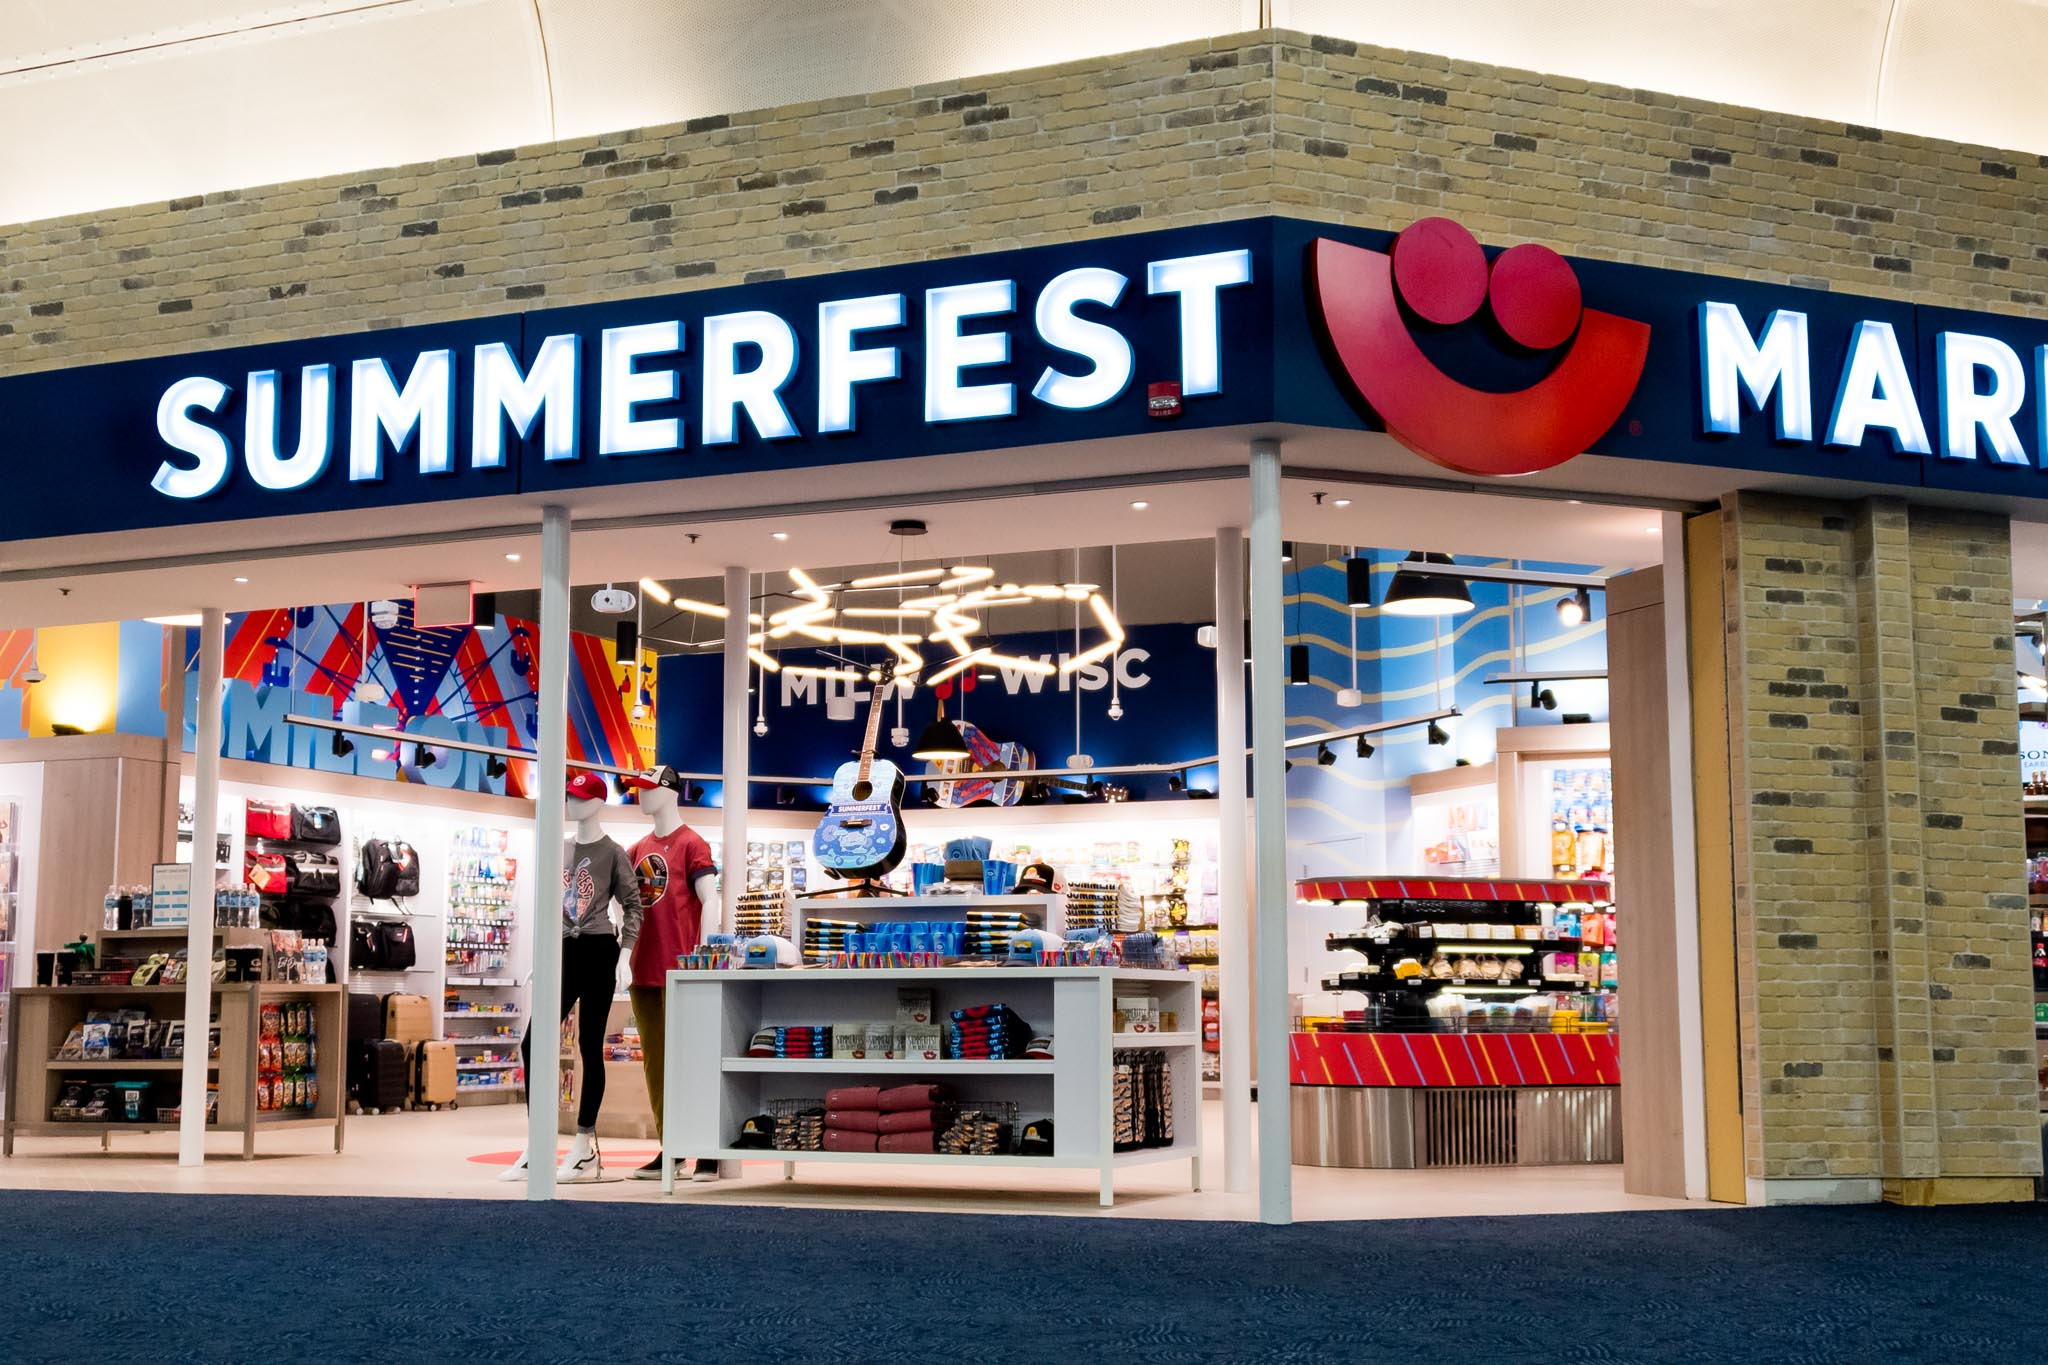 Summerfest Marketplace Officially Opens at MKE